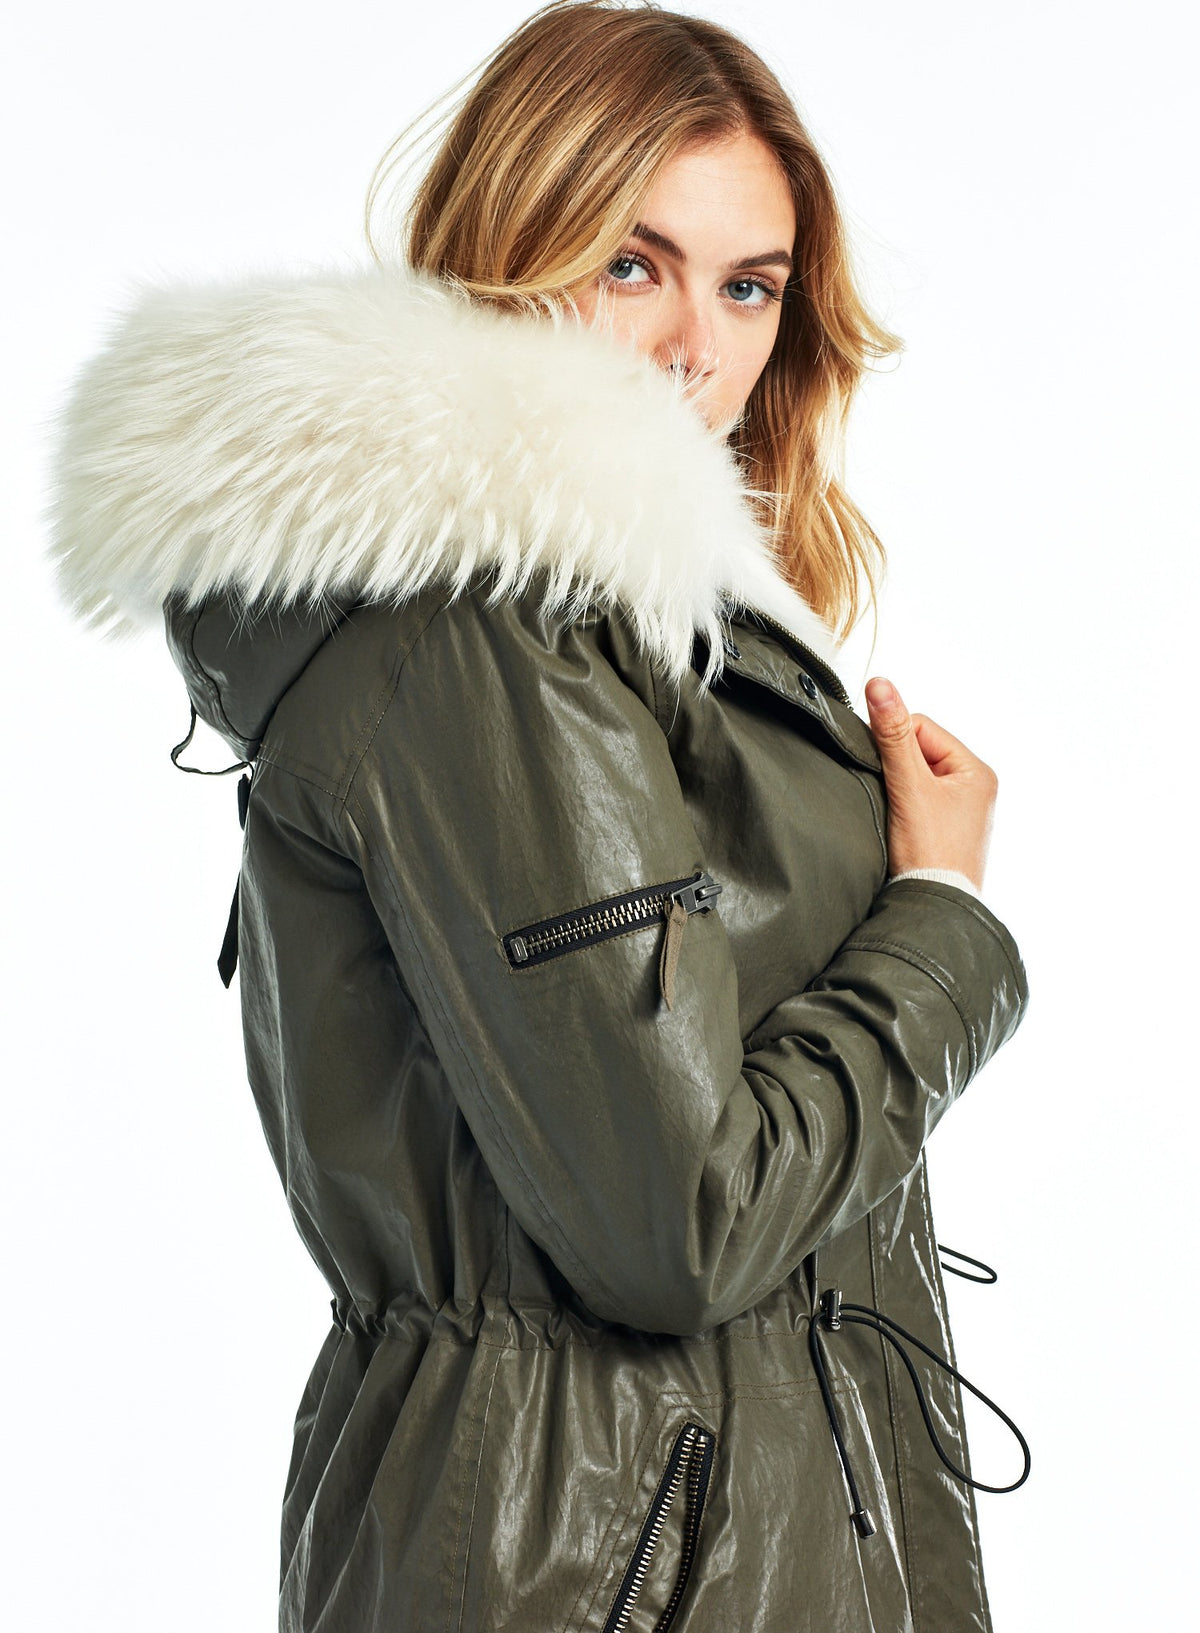 LUXE LIMELIGHT LUXE LIMELIGHT - SAM. New York Sam nyc jacket